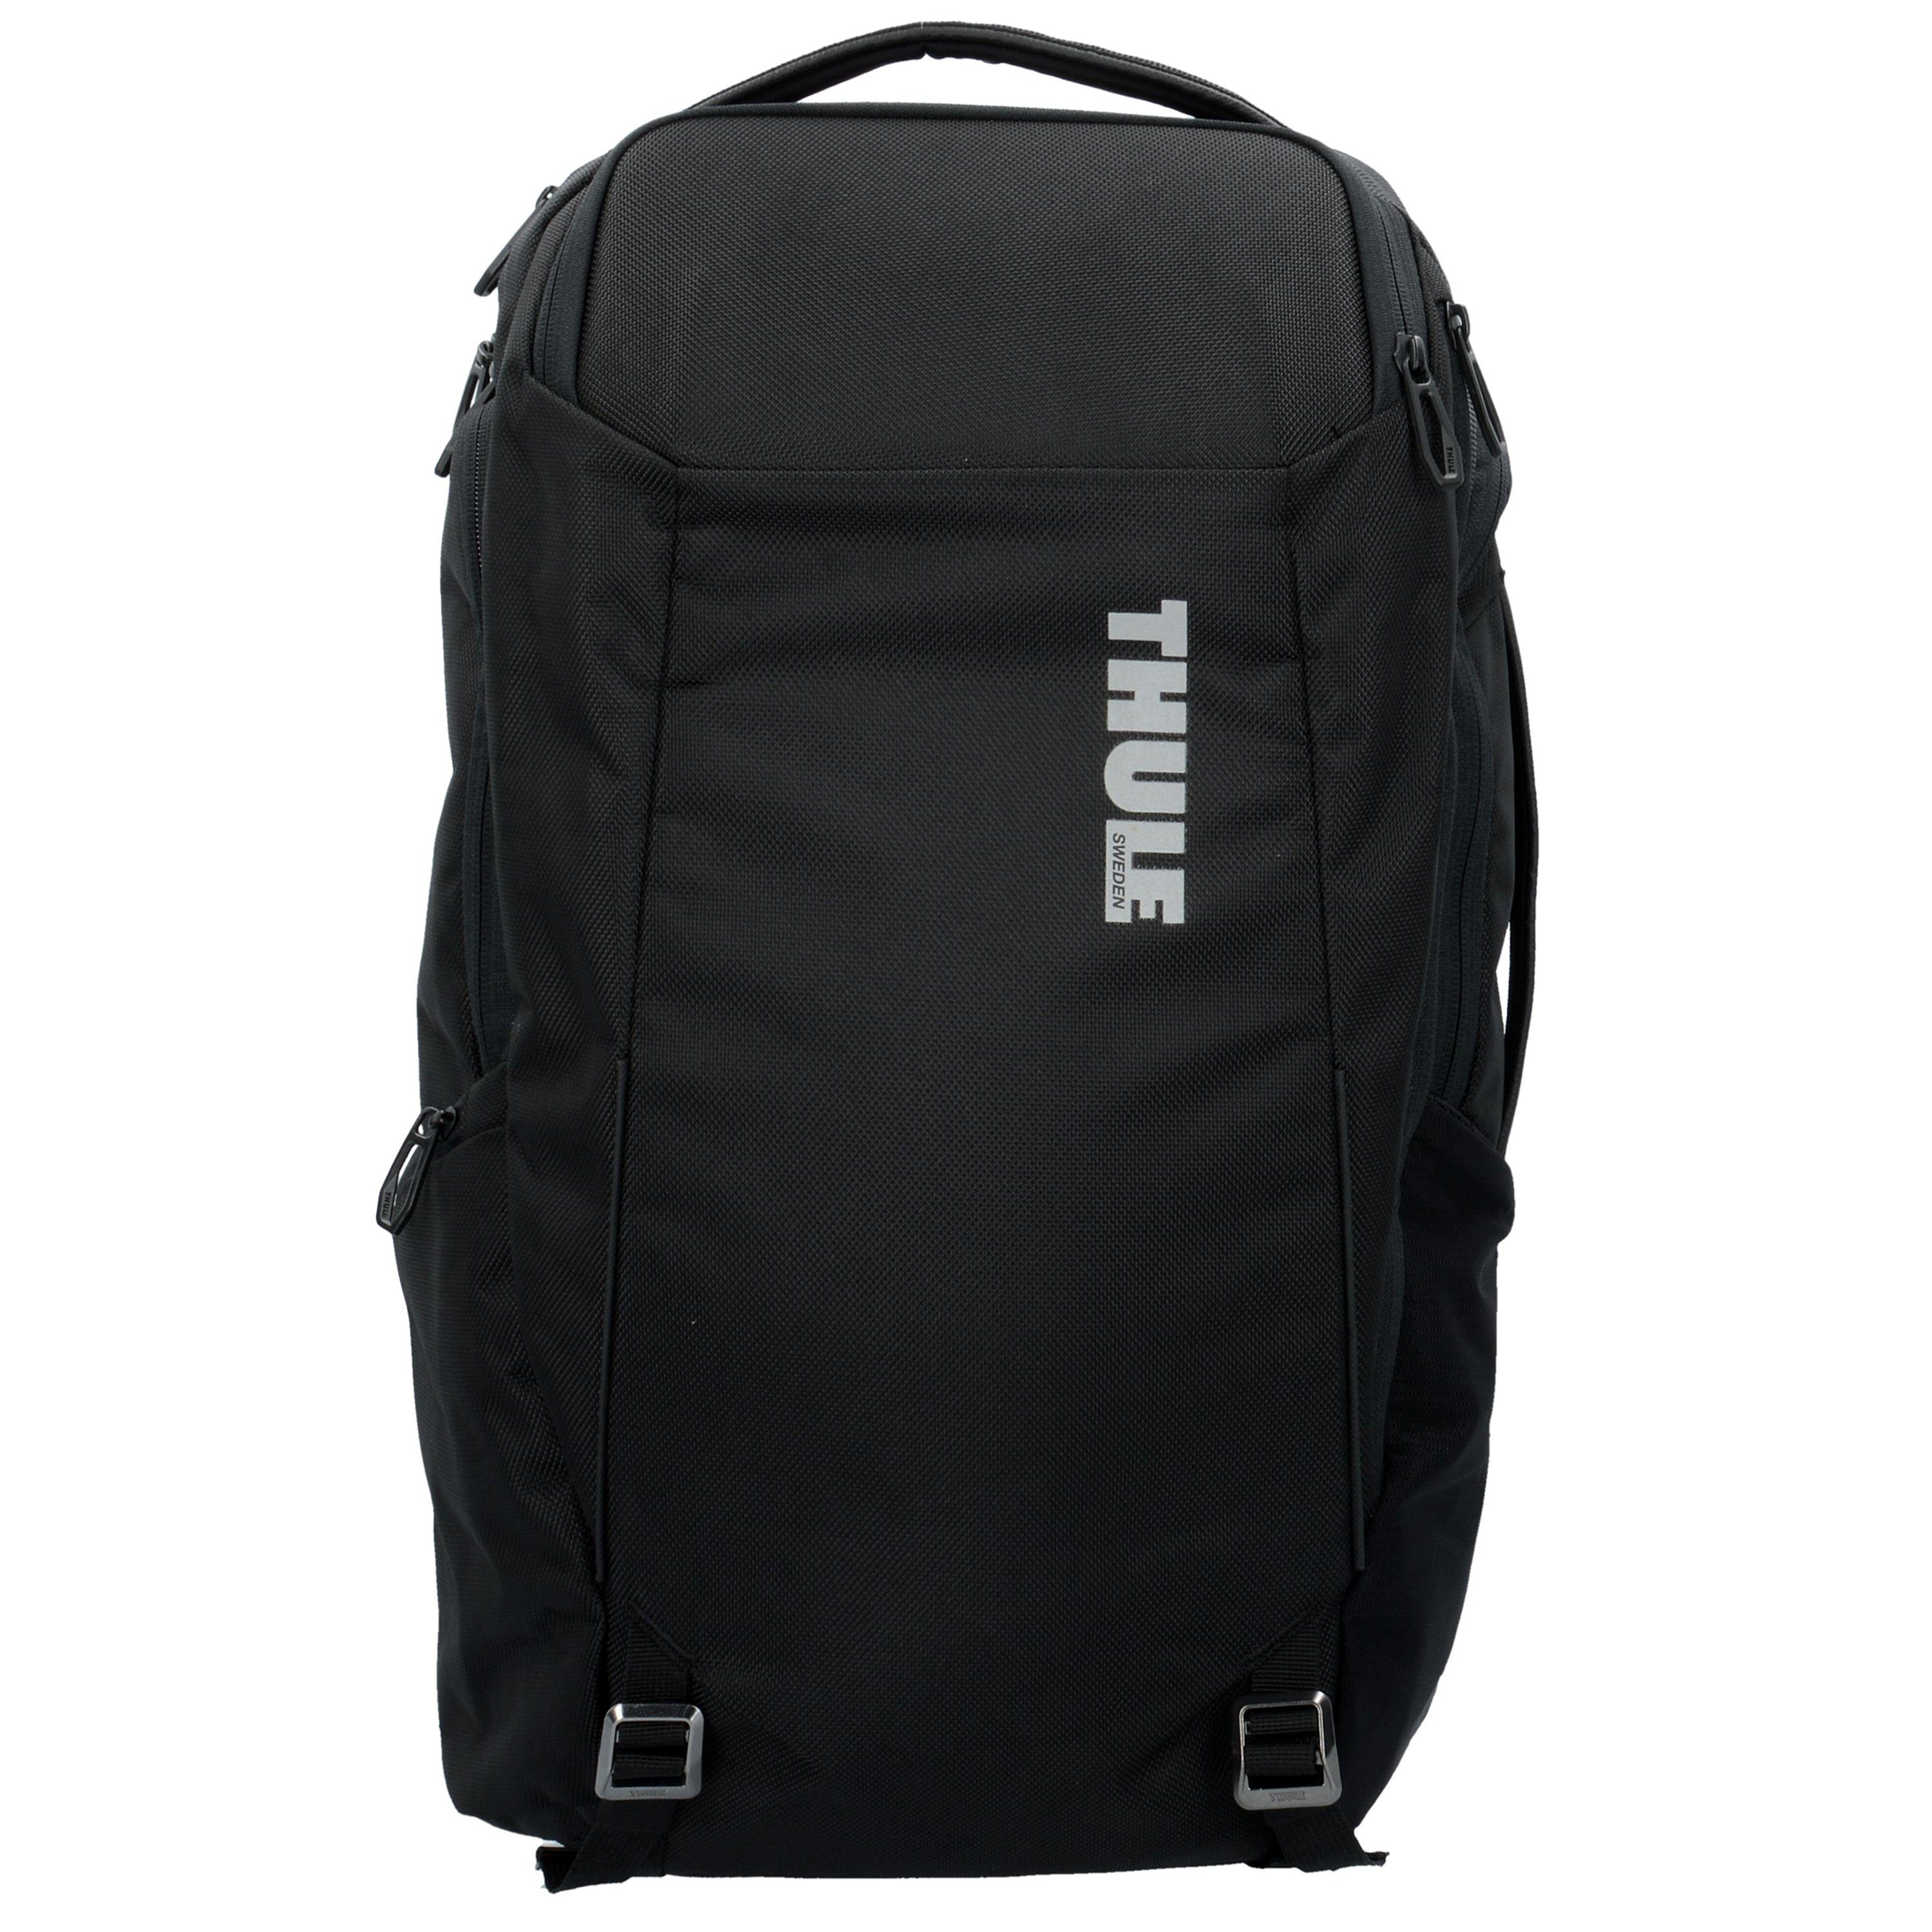 Thule Accent Business Rucksack 55 cm Laptopfach